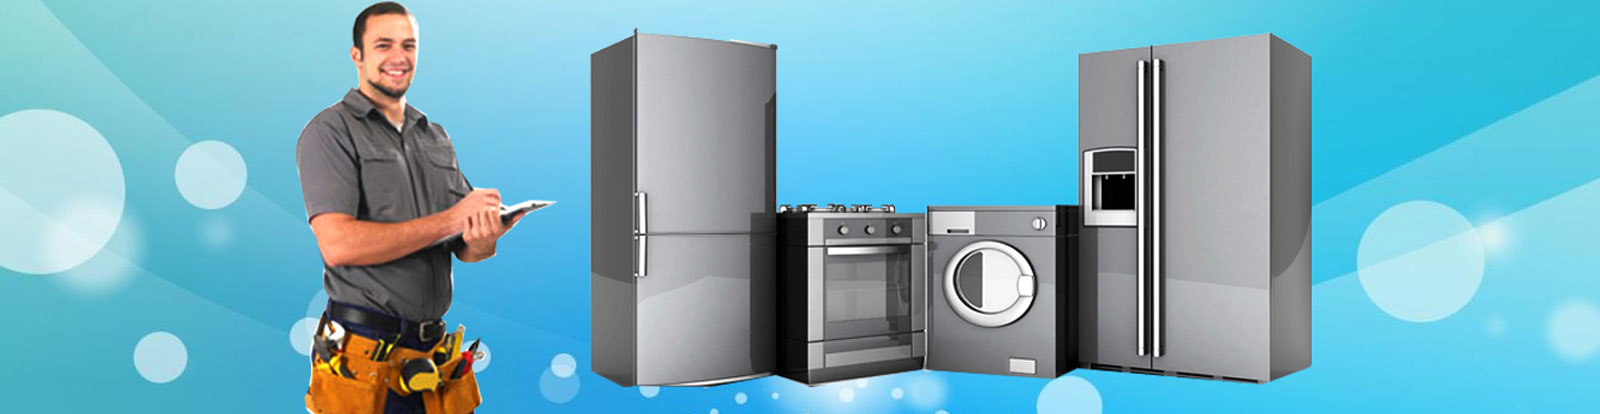 Home Appliance Repair in Delhi